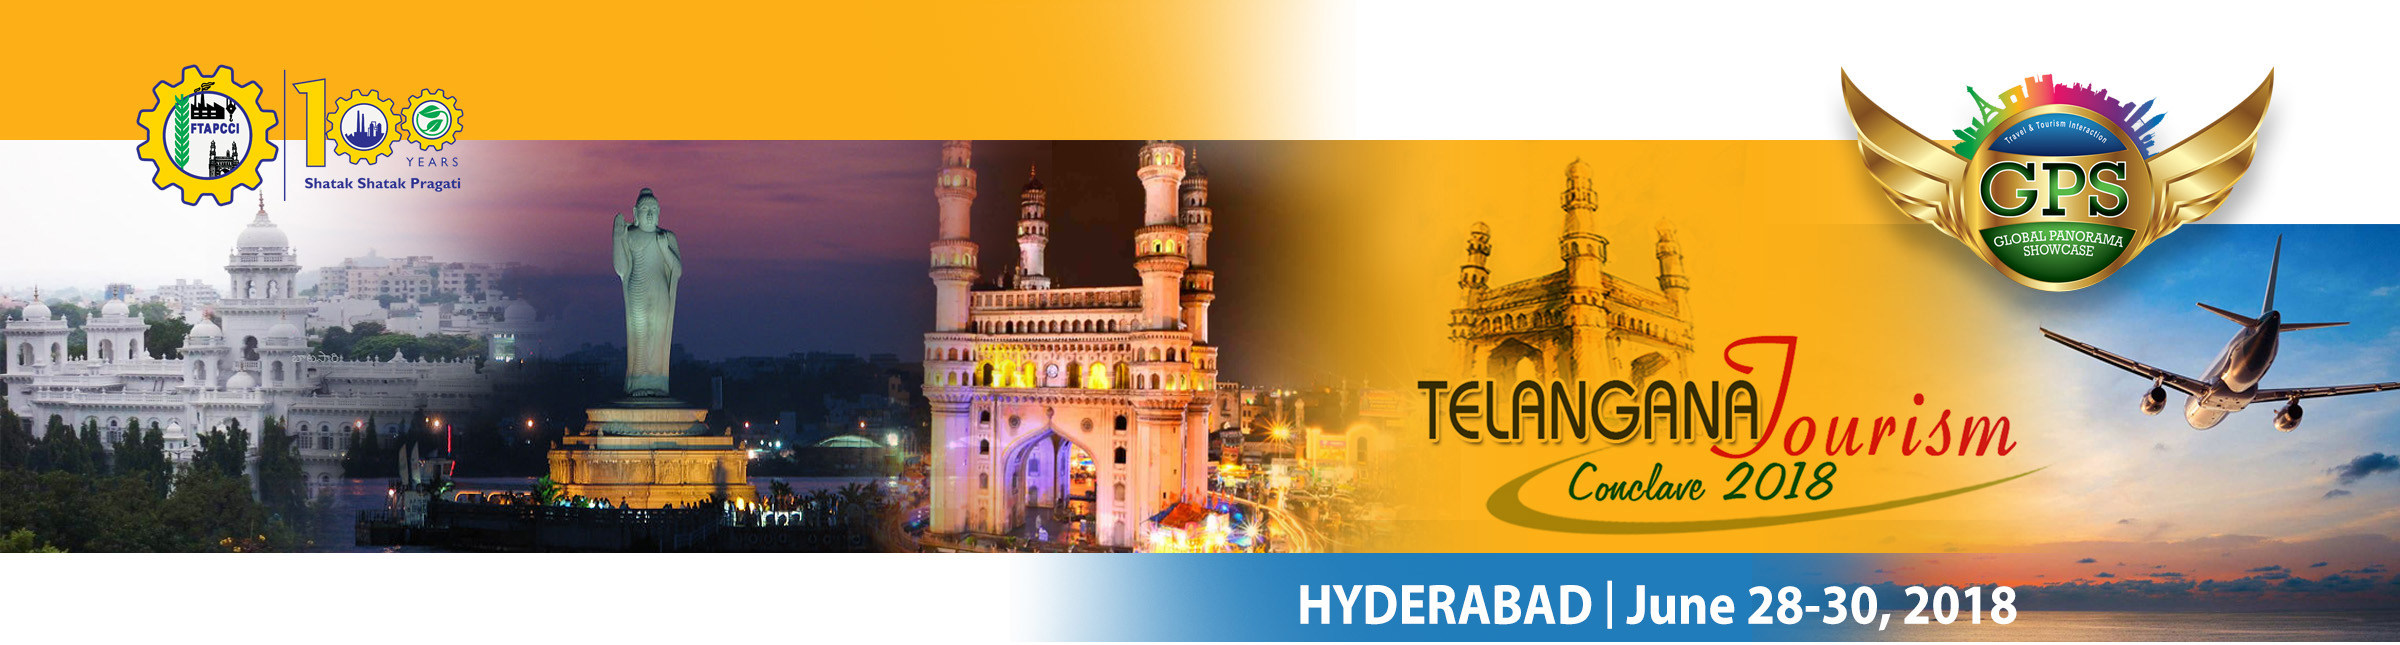 TELANGANA TOURISM CONCLAVE - GLOBAL PANORAMA SHOWCASE (GPS) HYDERABAD 28JUN - 30JUN 2018